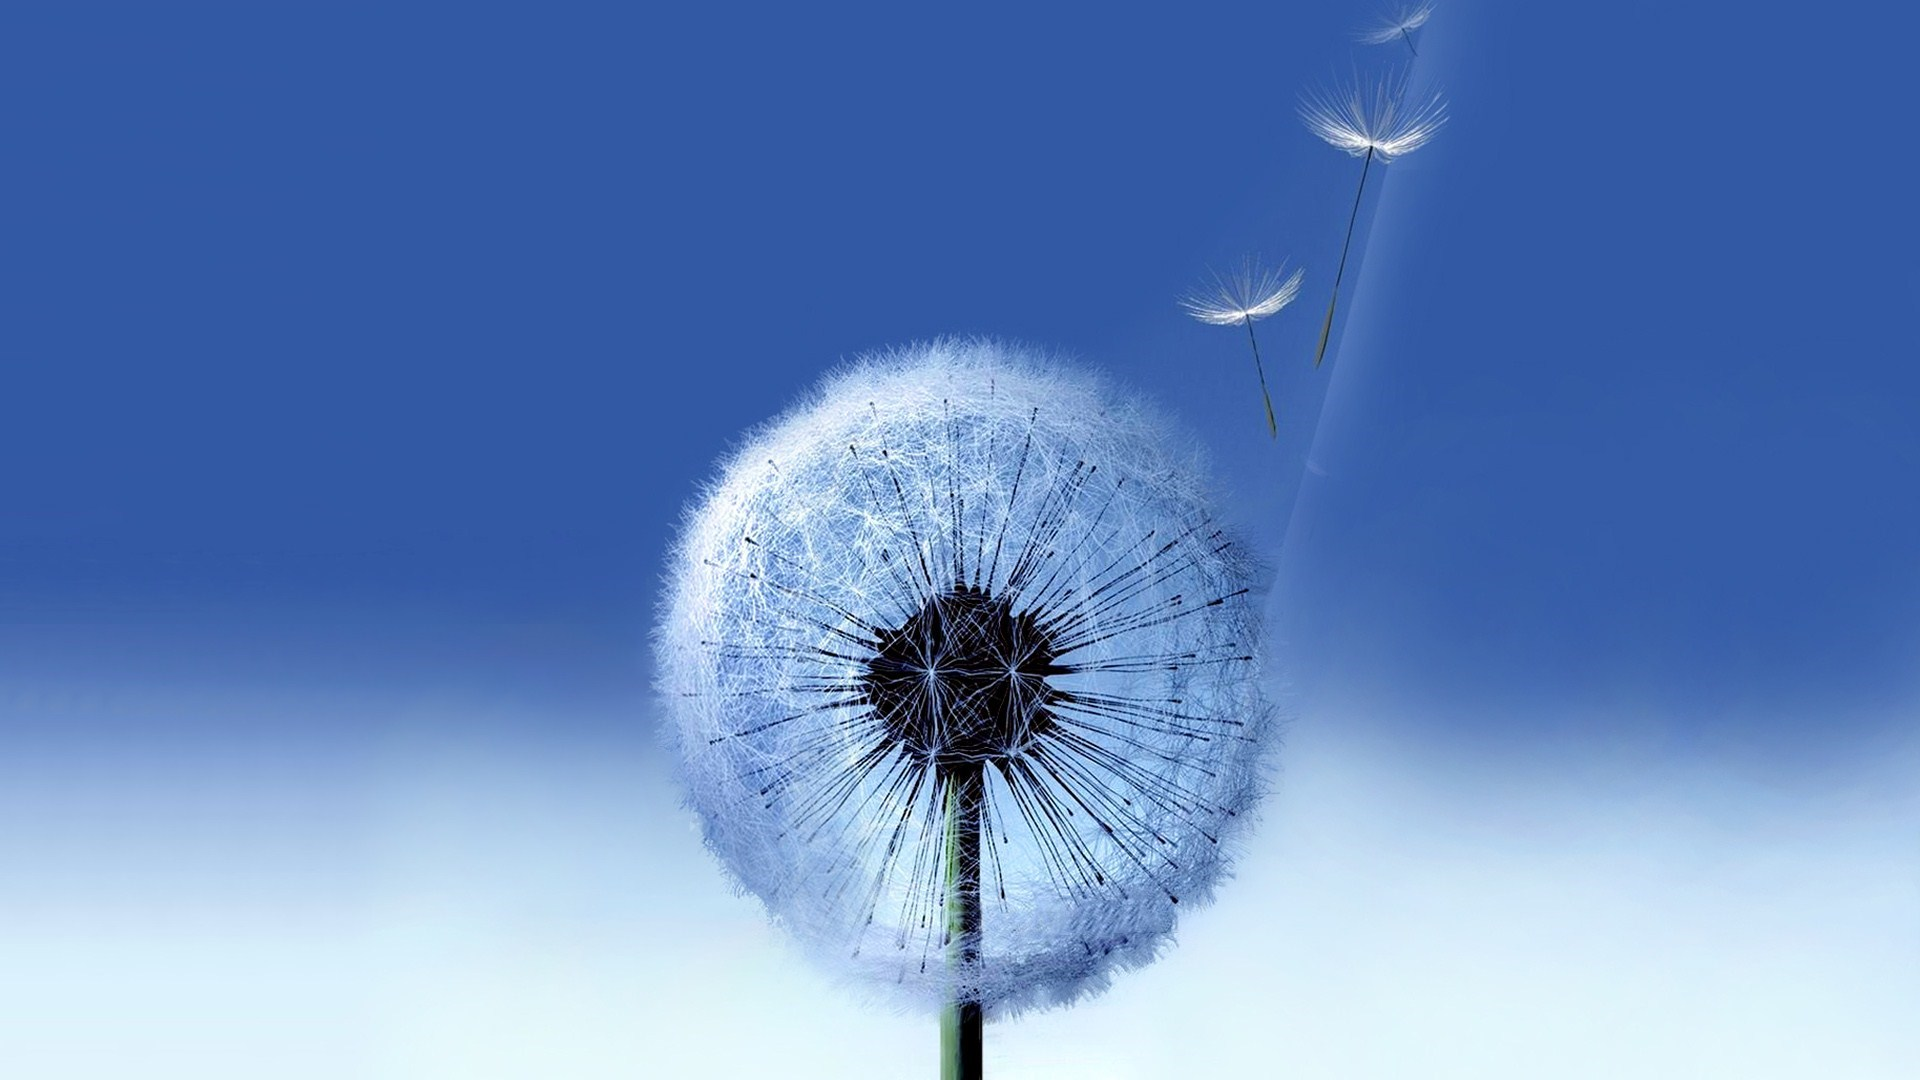 hd dandelion wallpaper